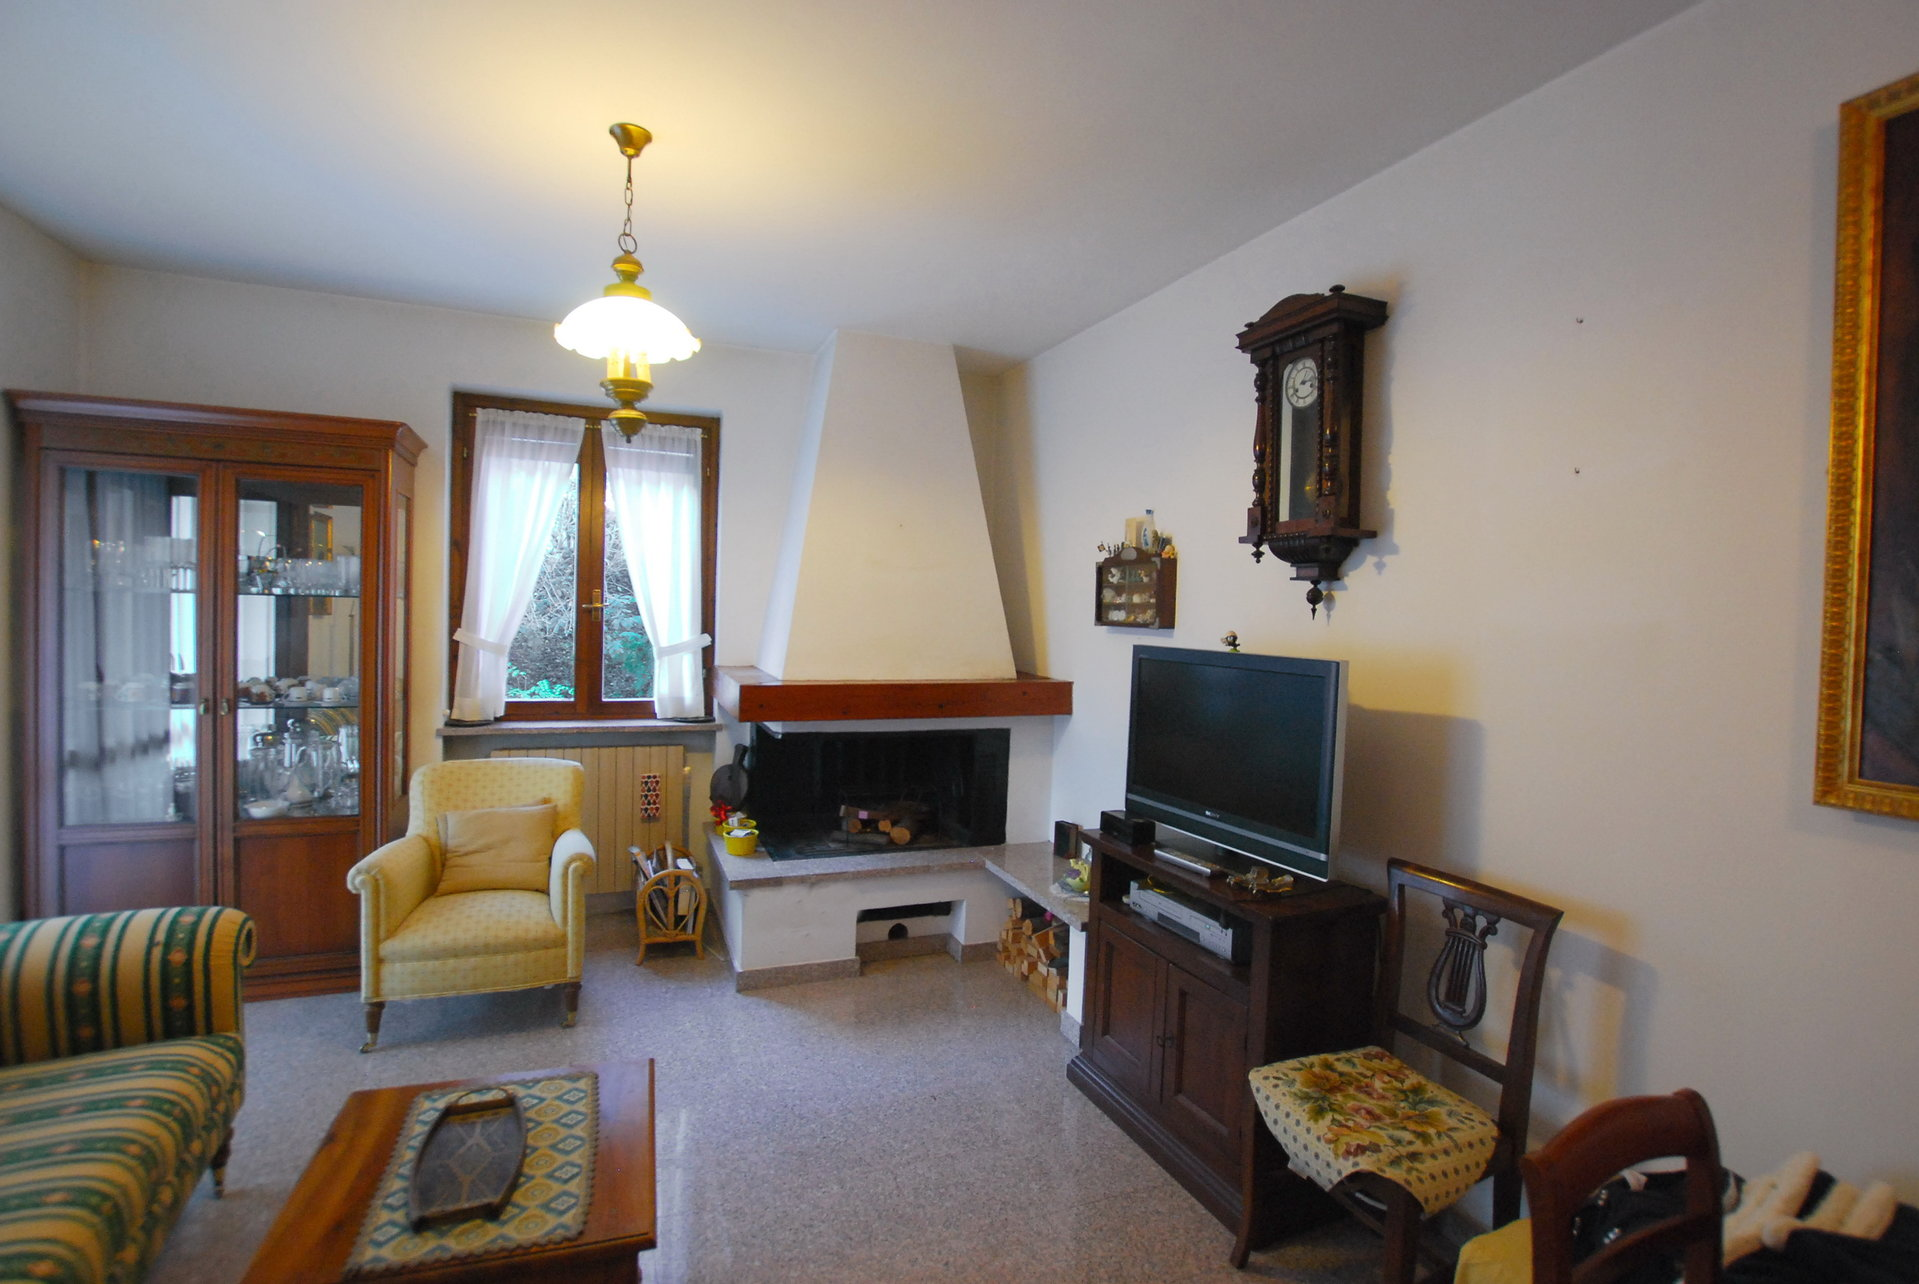 two-room for sale in Stresa- living room with fireplace